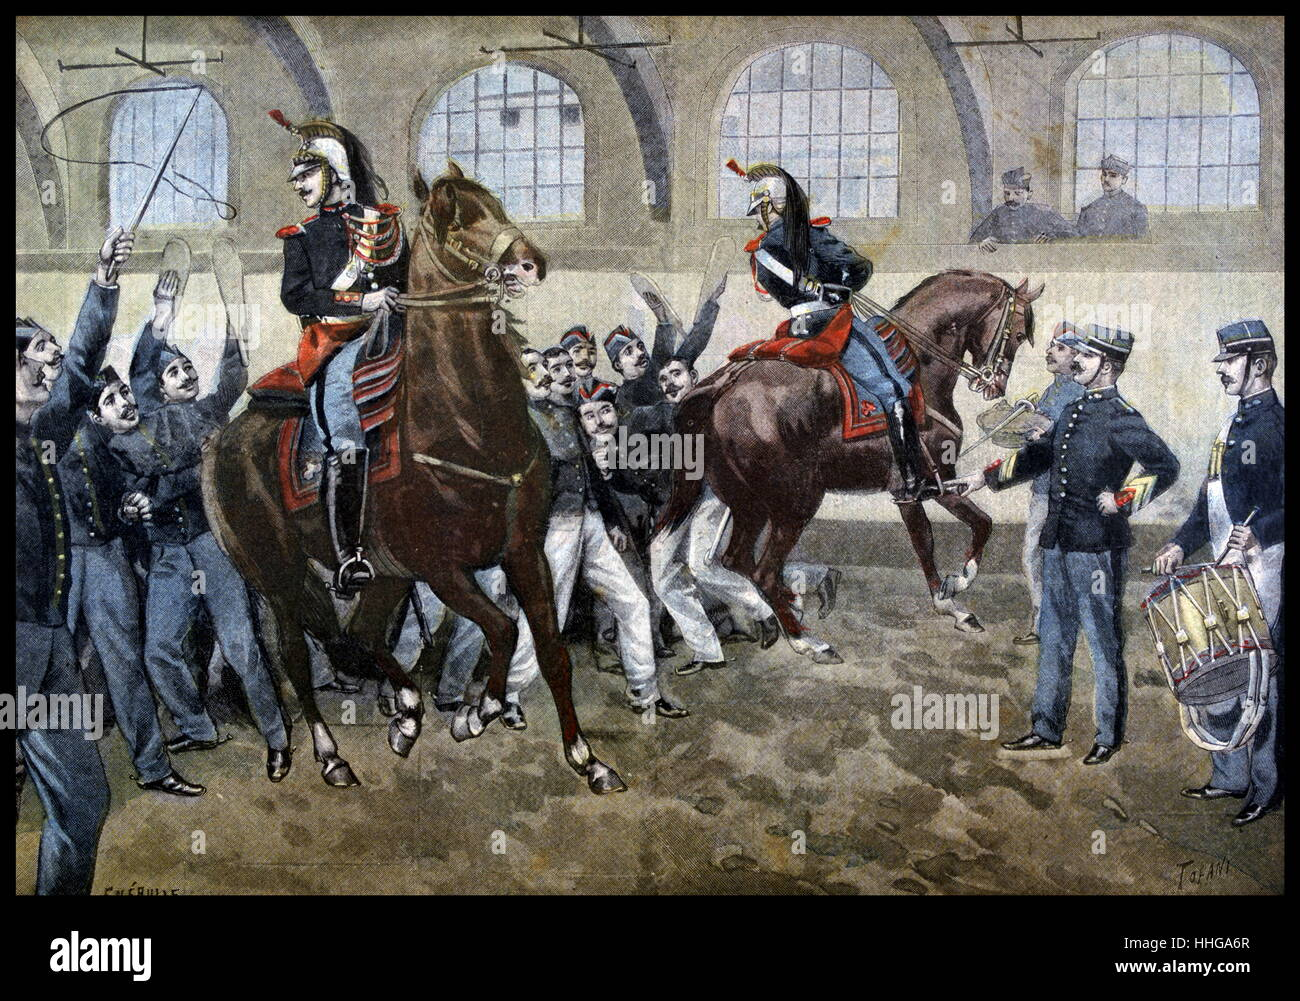 French cavalry in training, Ecole Militaire, Paris 1899 - Stock Image